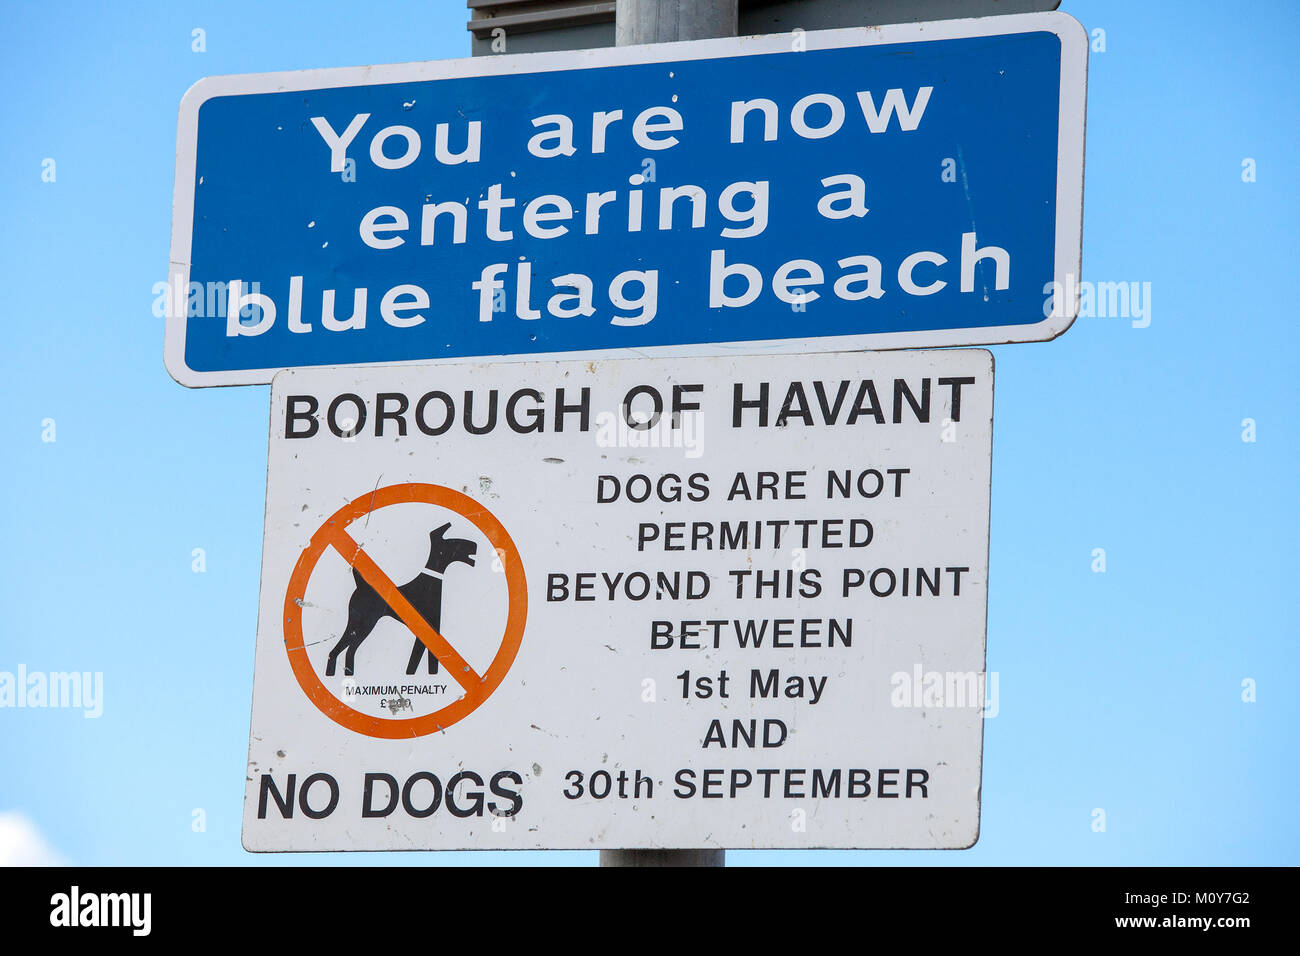 You are now entering a blue flag beach sign and a dogs are not permitted         beyond this point between 1st May - Stock Image